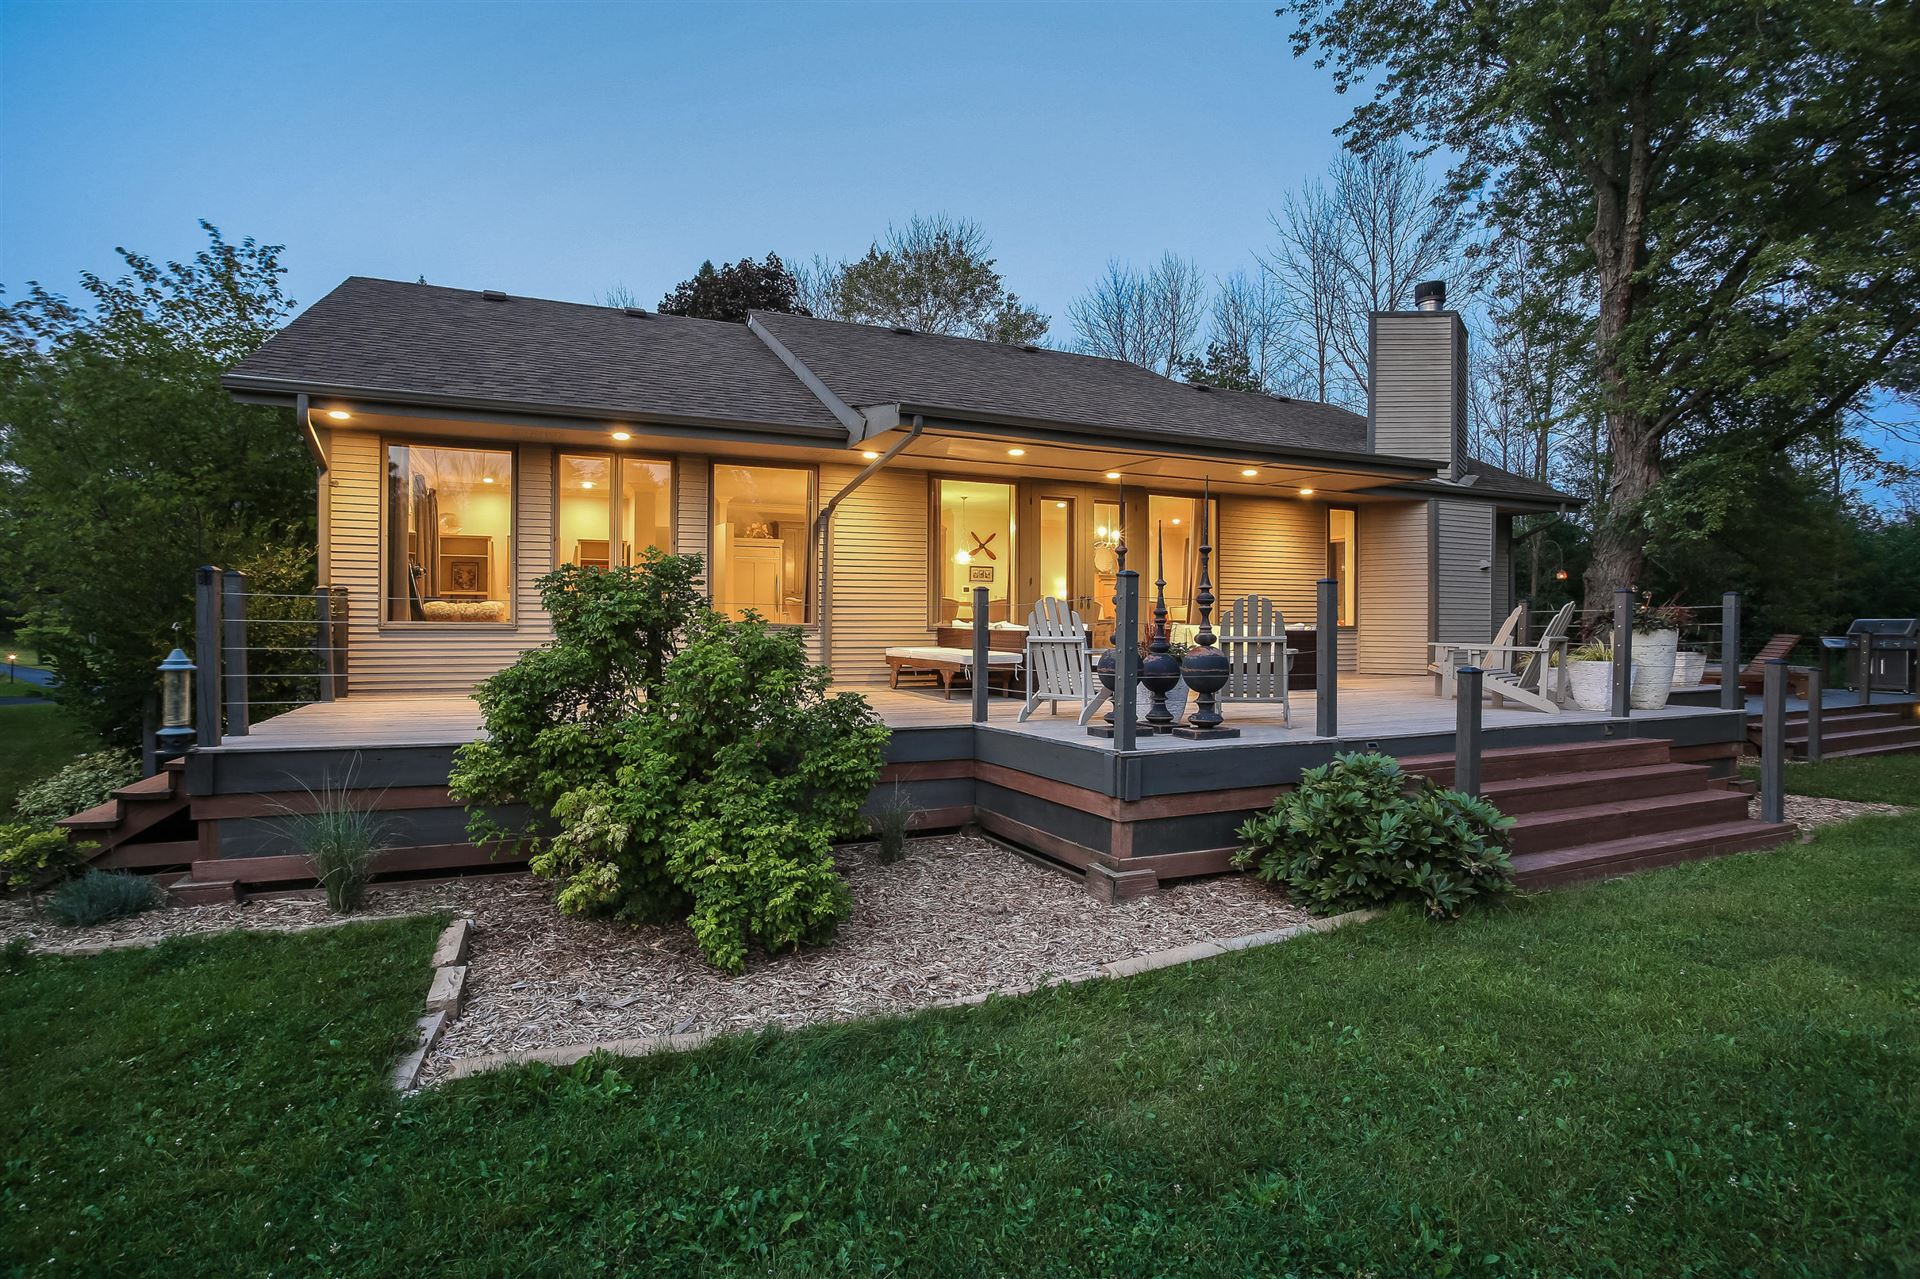 1465 W County Line Rd, River Hills, WI 53217 - #: 1723918